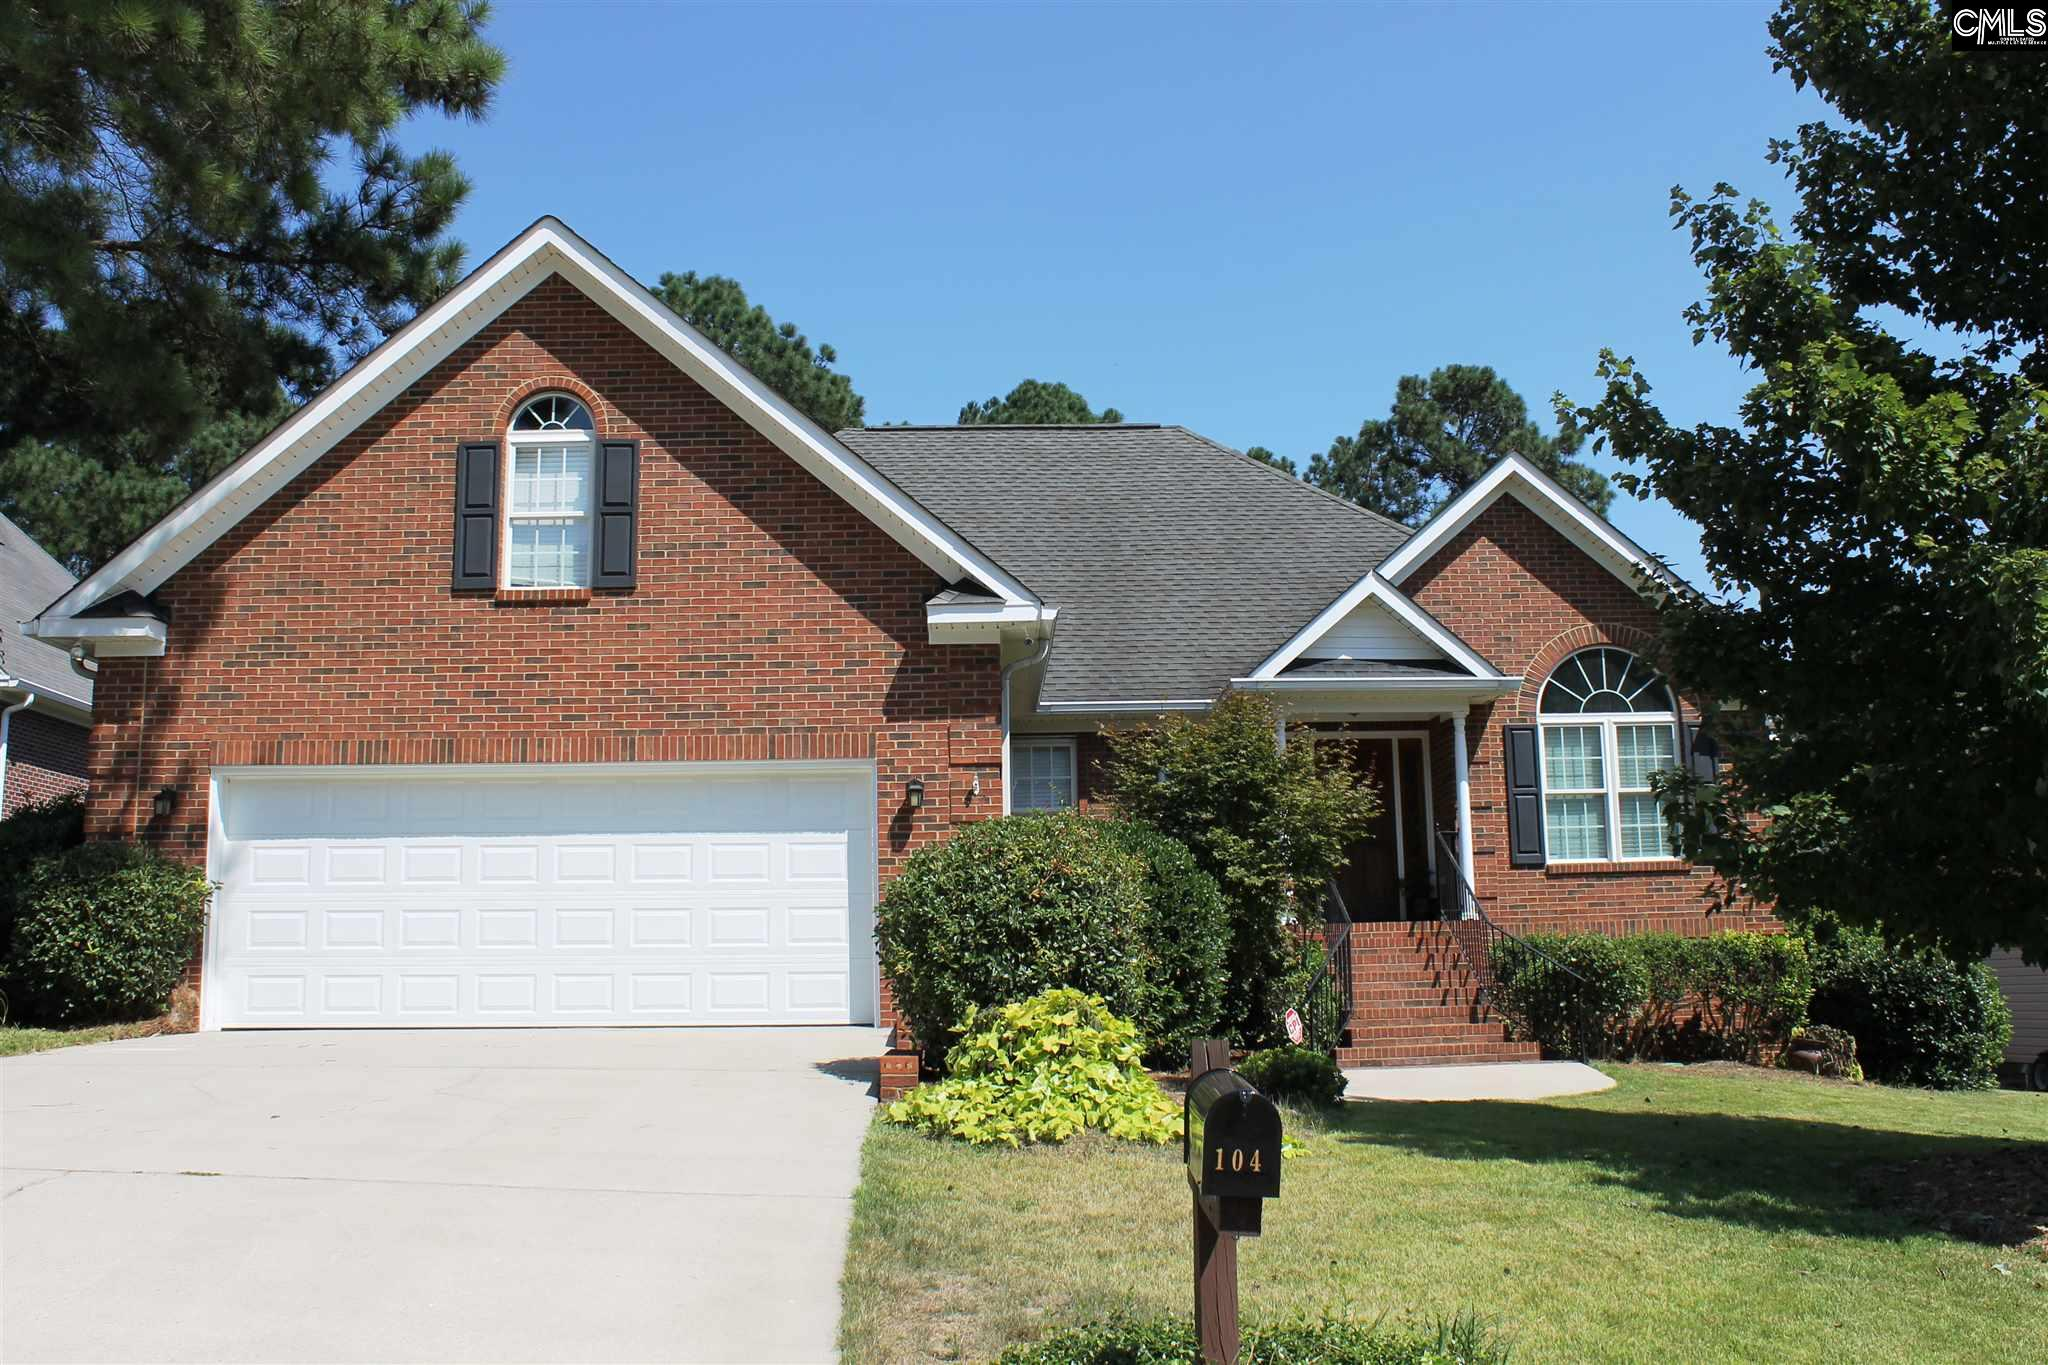 104 Lassitter Lexington, SC 29072